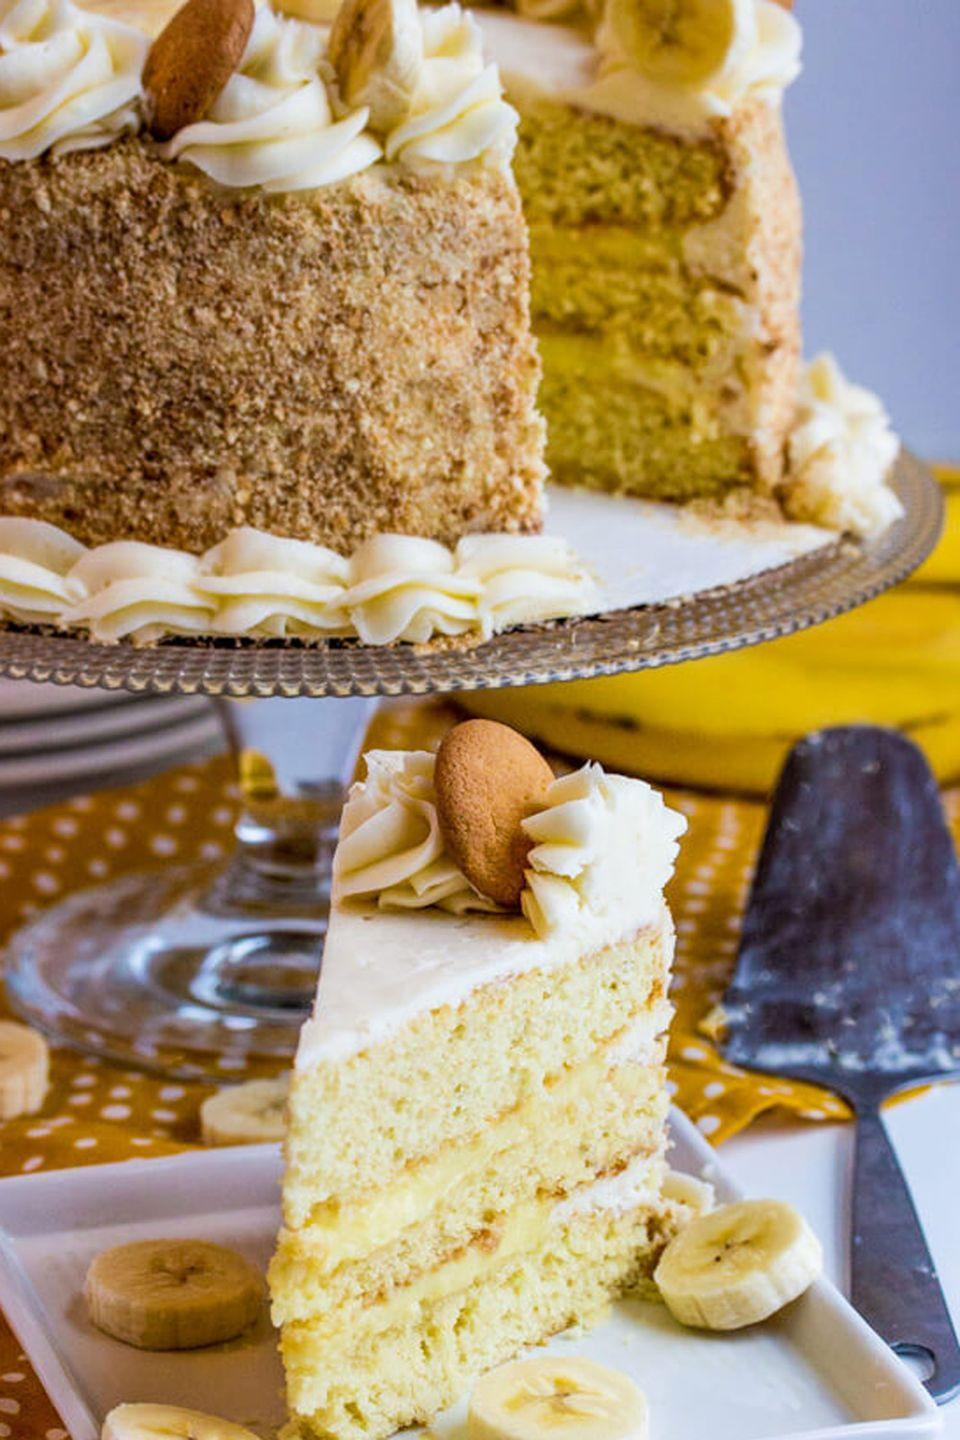 """<p>Trade whipped cream for regular ol' vanilla frosting in this fresh take on a classic.</p><p><em><a href=""""https://tornadoughalli.com/2017/03/banana-cream-cake/"""" rel=""""nofollow noopener"""" target=""""_blank"""" data-ylk=""""slk:Get the recipe from Tornadough Allie »"""" class=""""link rapid-noclick-resp"""">Get the recipe from Tornadough Allie »</a></em> </p>"""